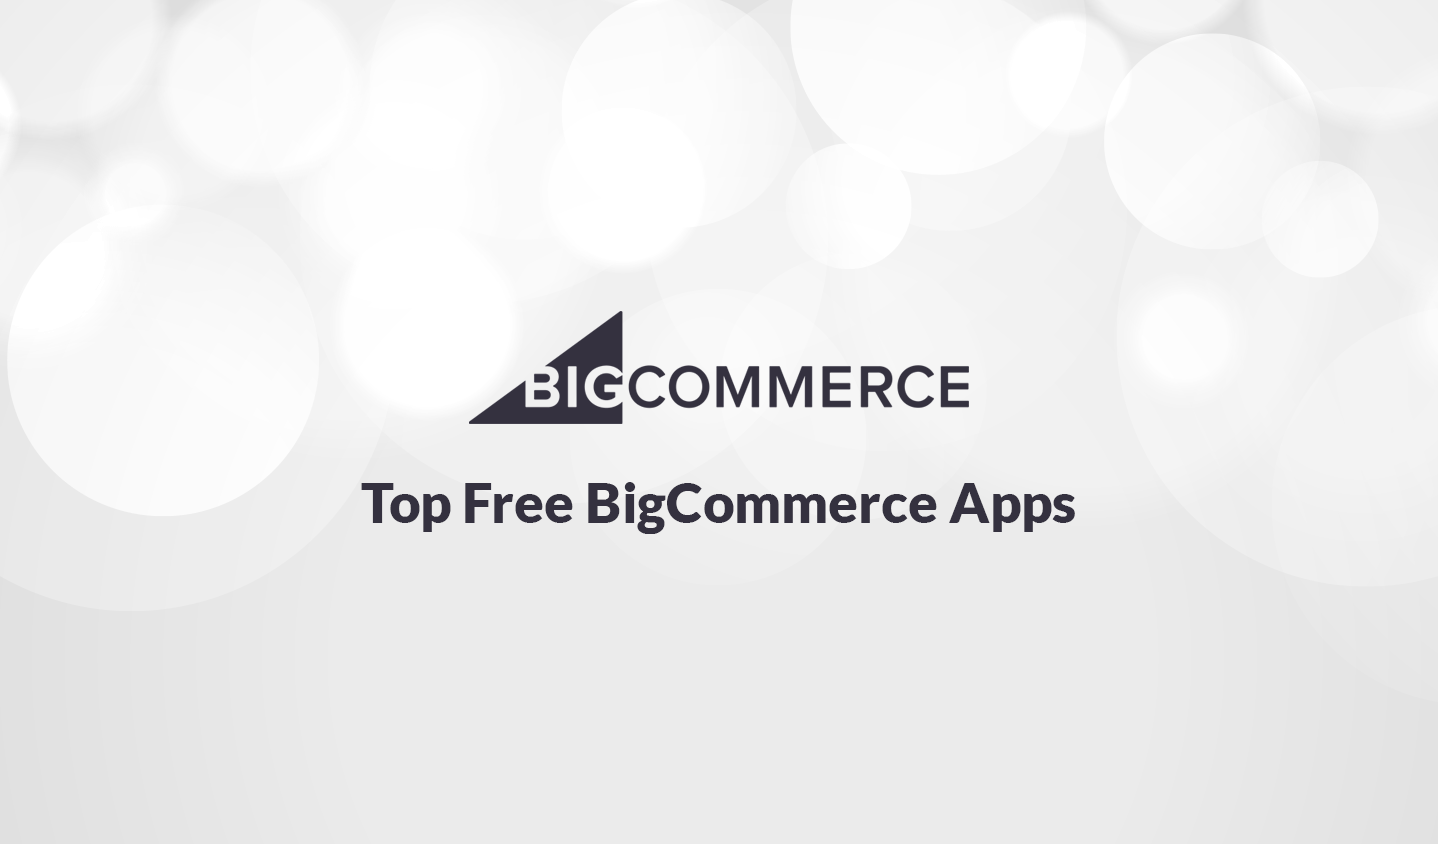 10+ Top Free BigCommerce Apps 2020